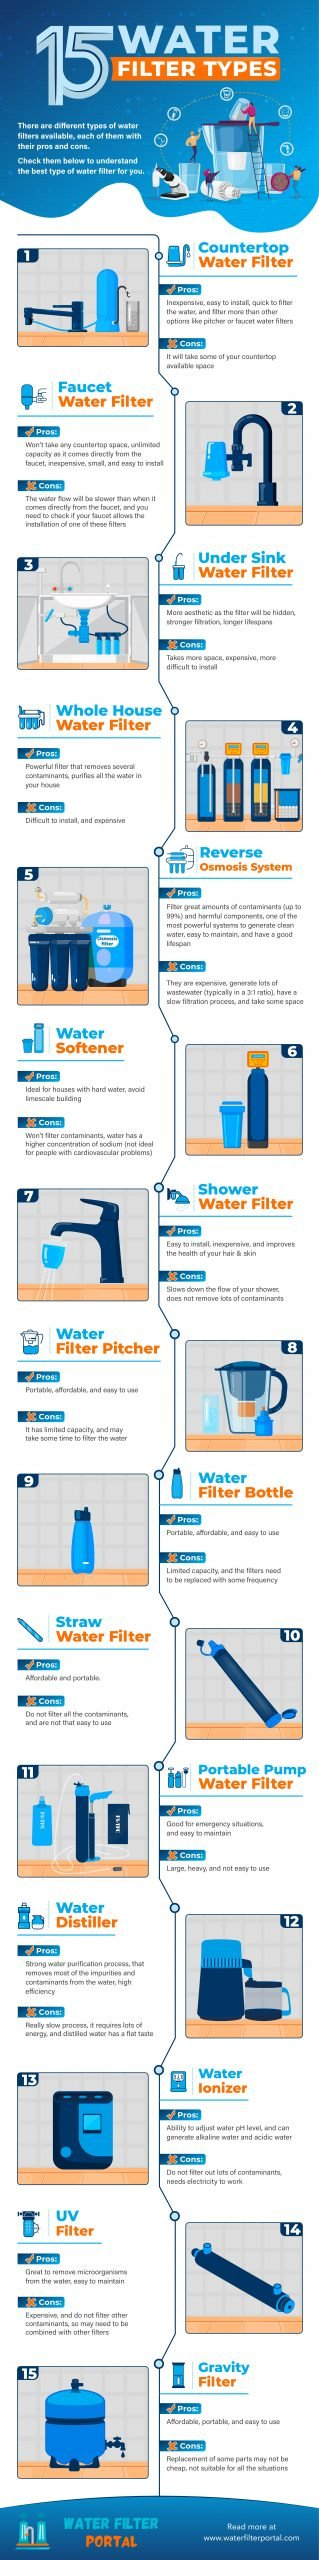 water-filter-types-infographic